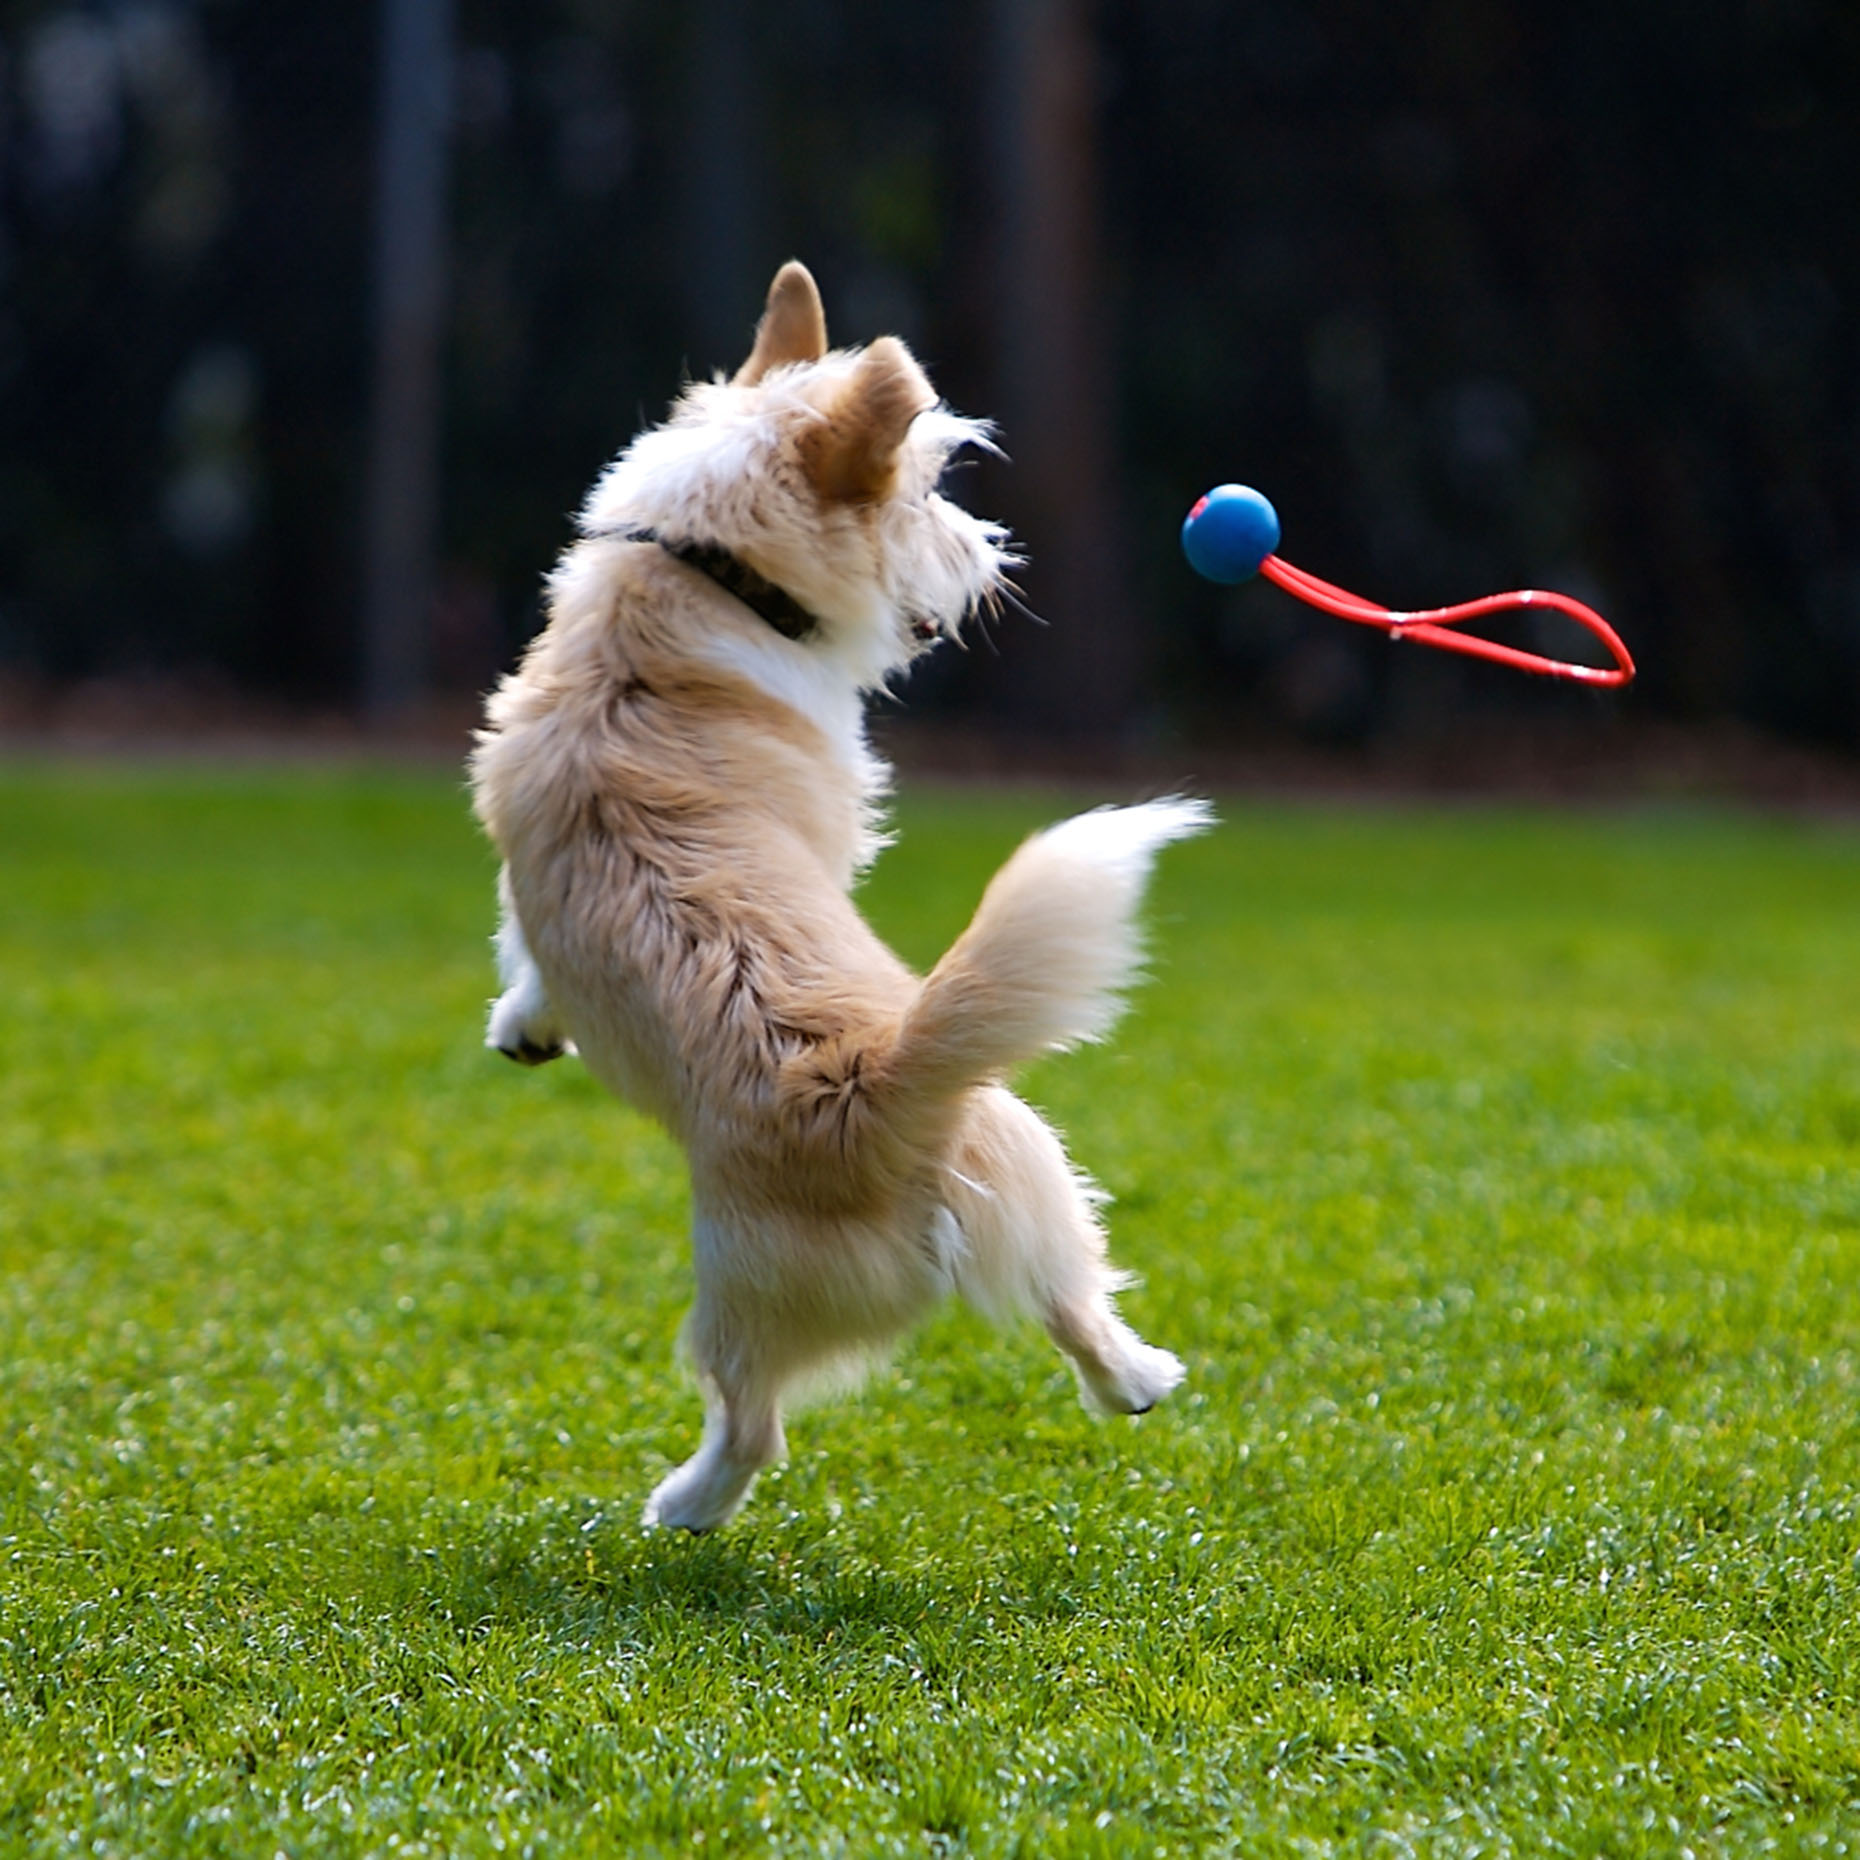 Dog Photography | Dog Jumping for Toy by Mark Rogers